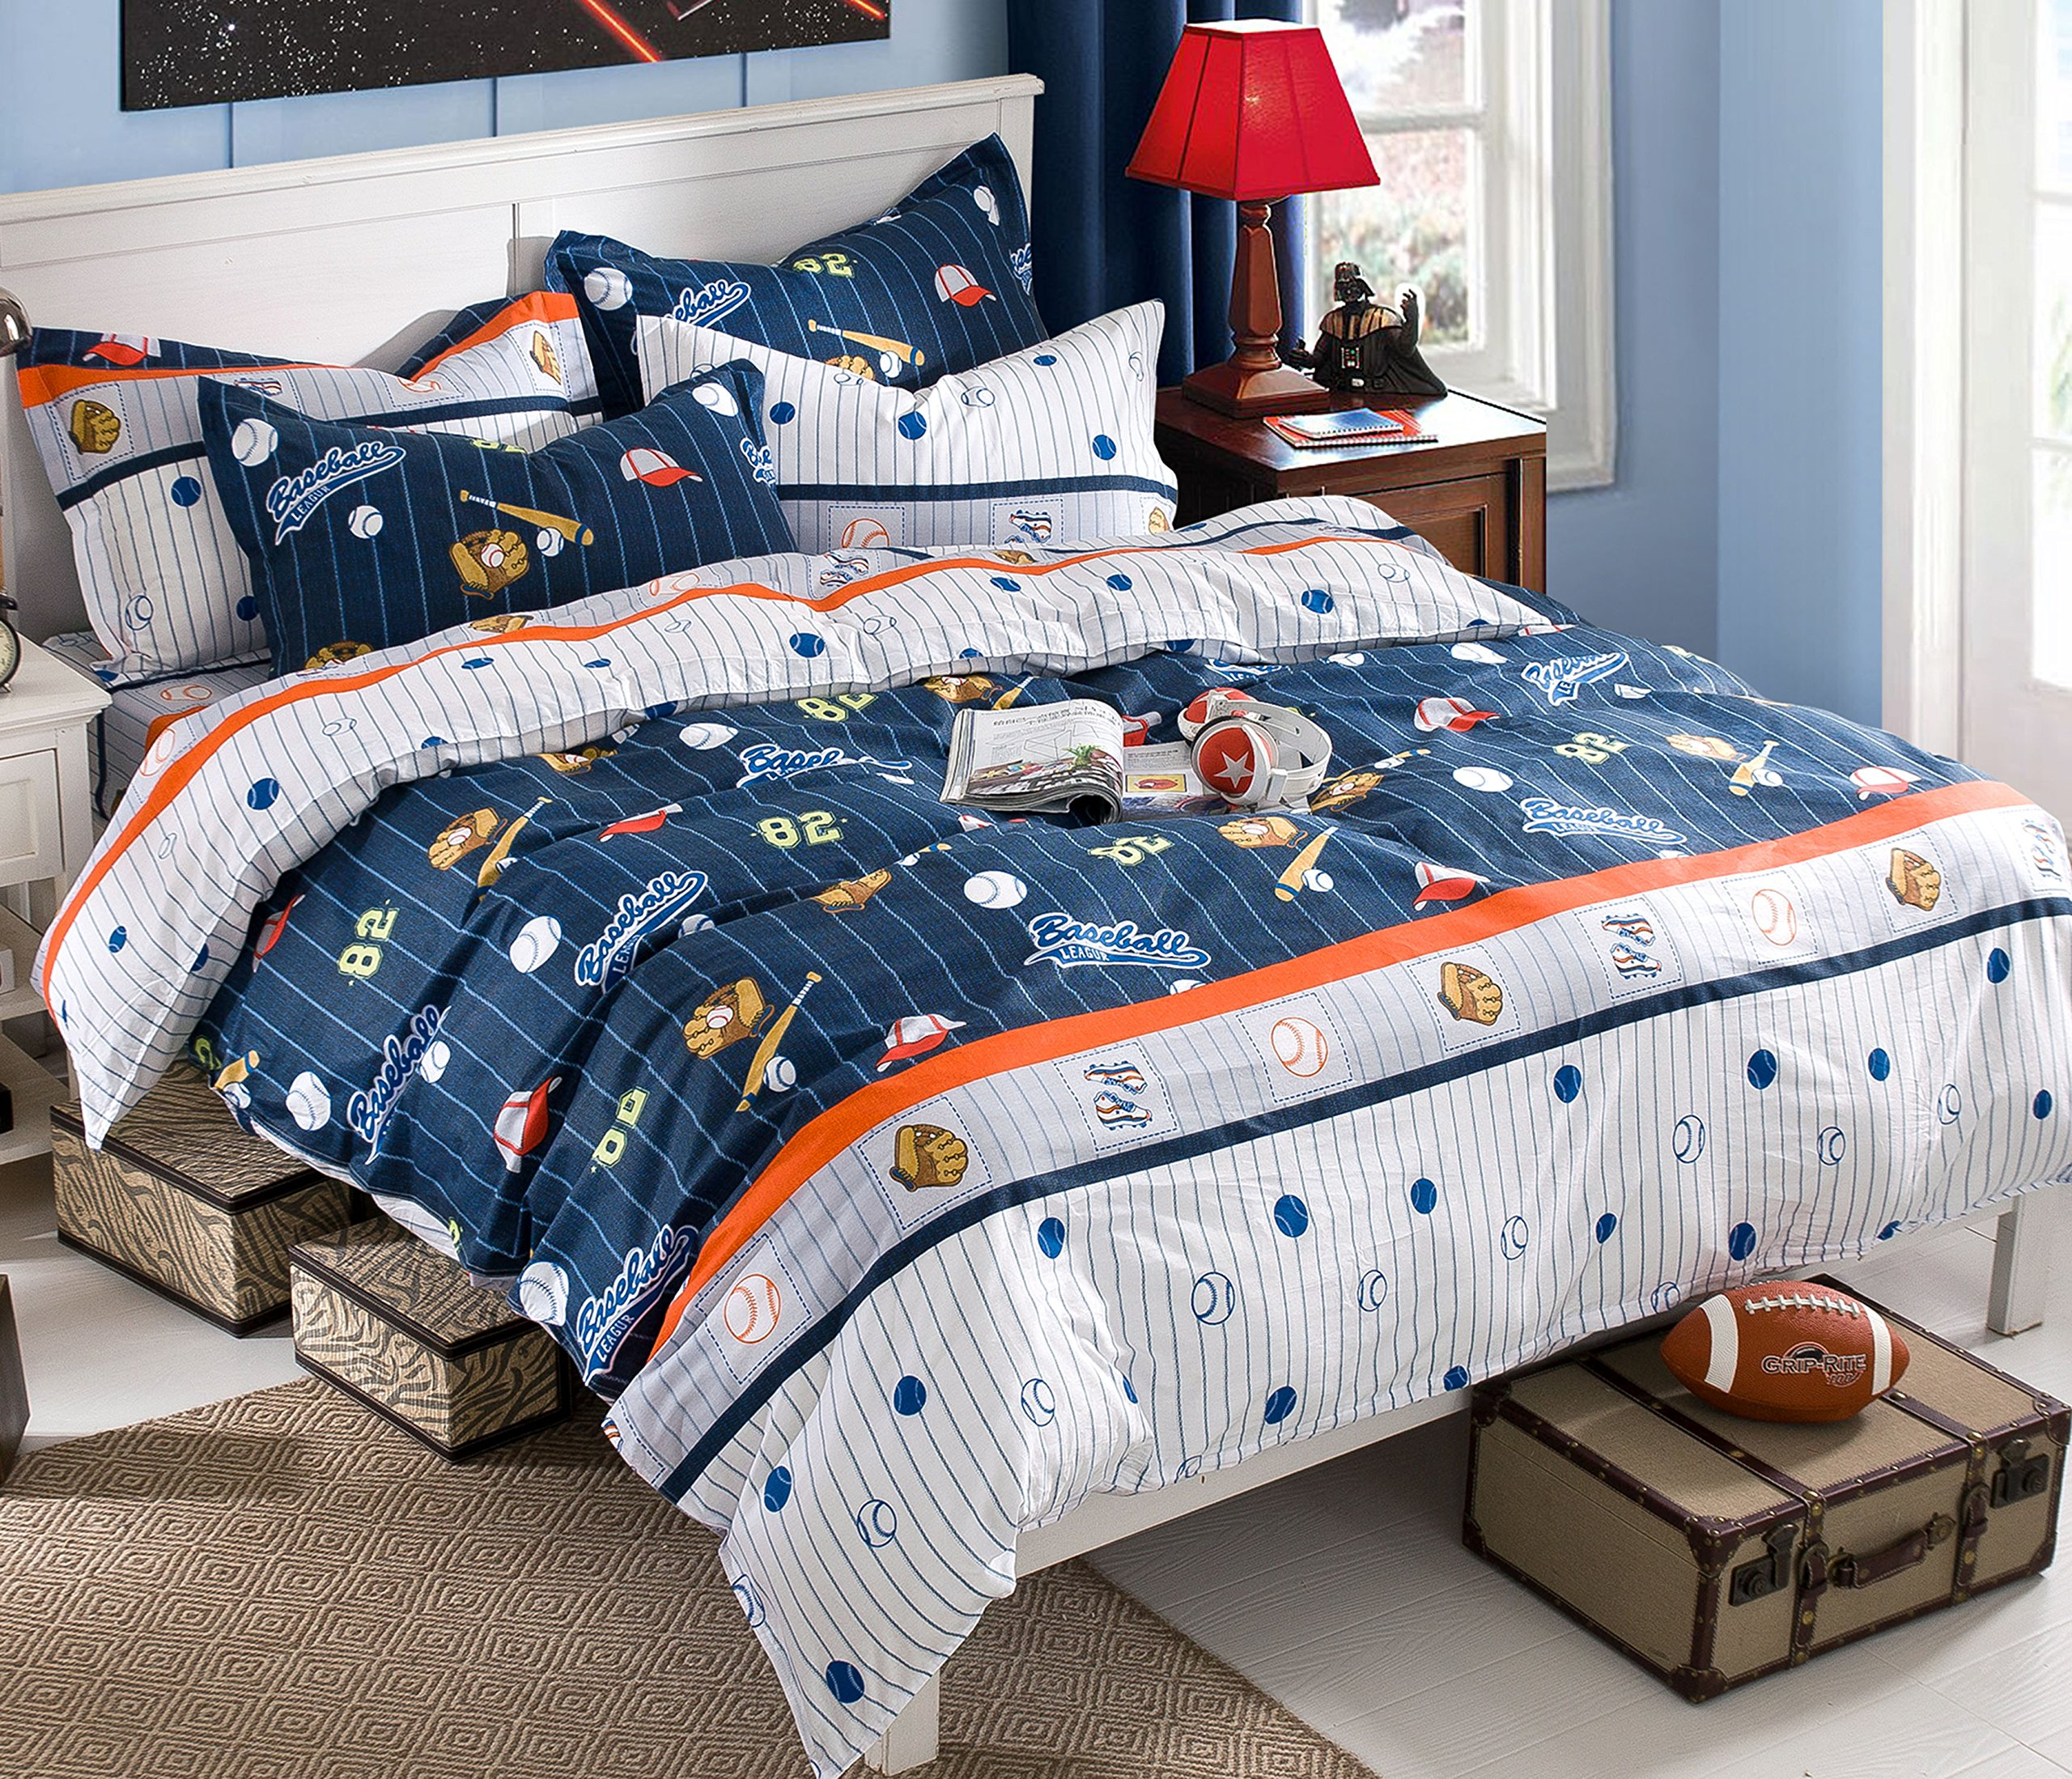 Cliab Baseball Bedding for Boys Full Size Blue White Orange Bed Sheets 100% Cotton Duvet Cover Set 5 Pieces